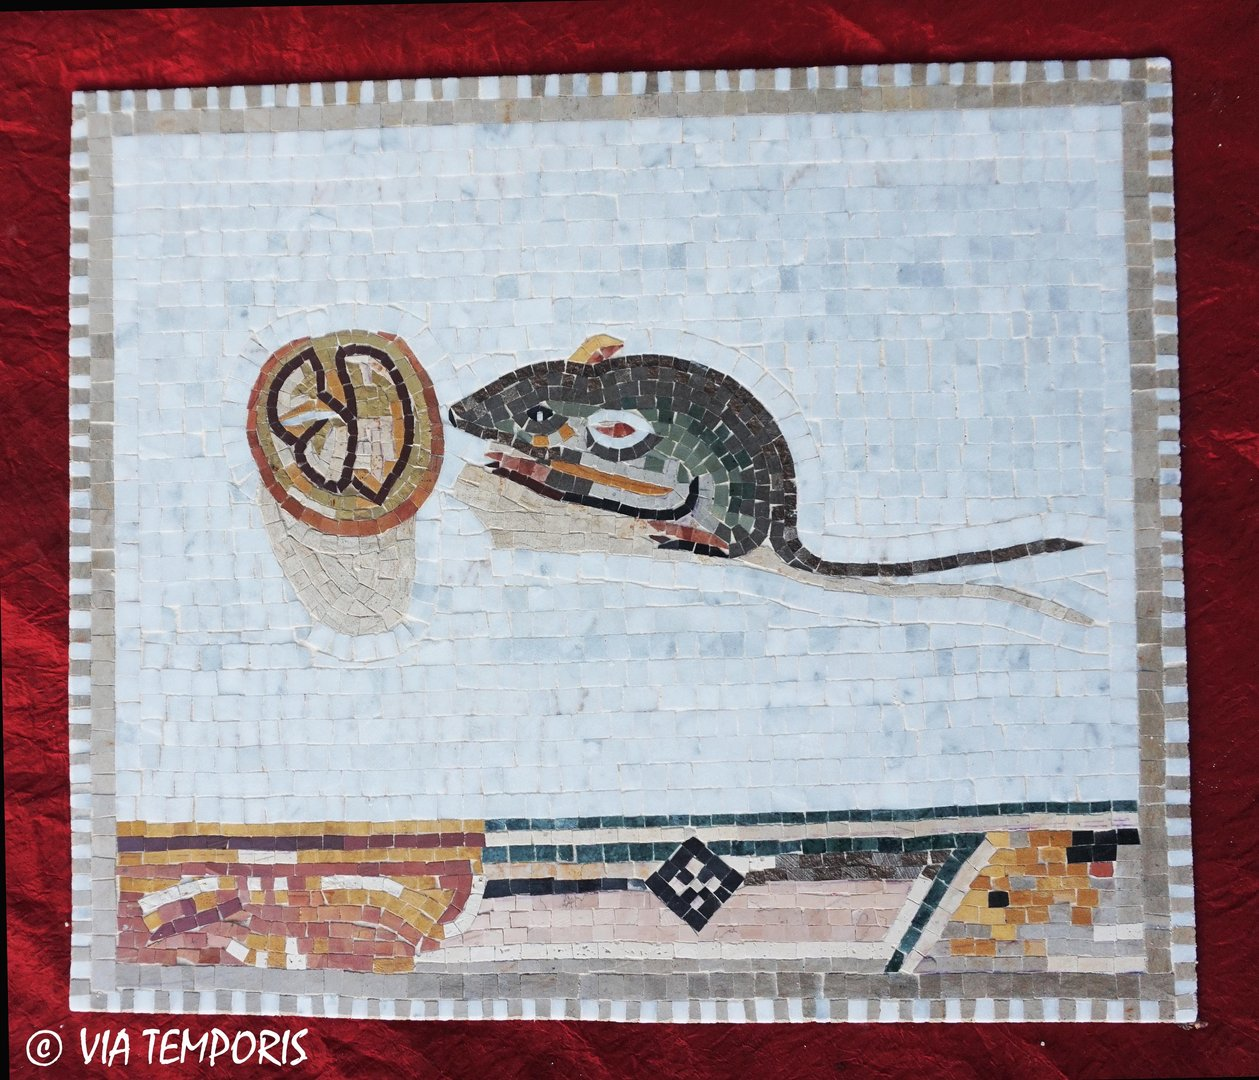 ROMAN MOSAIC - MOUSE EATING A NUT - VATICAN